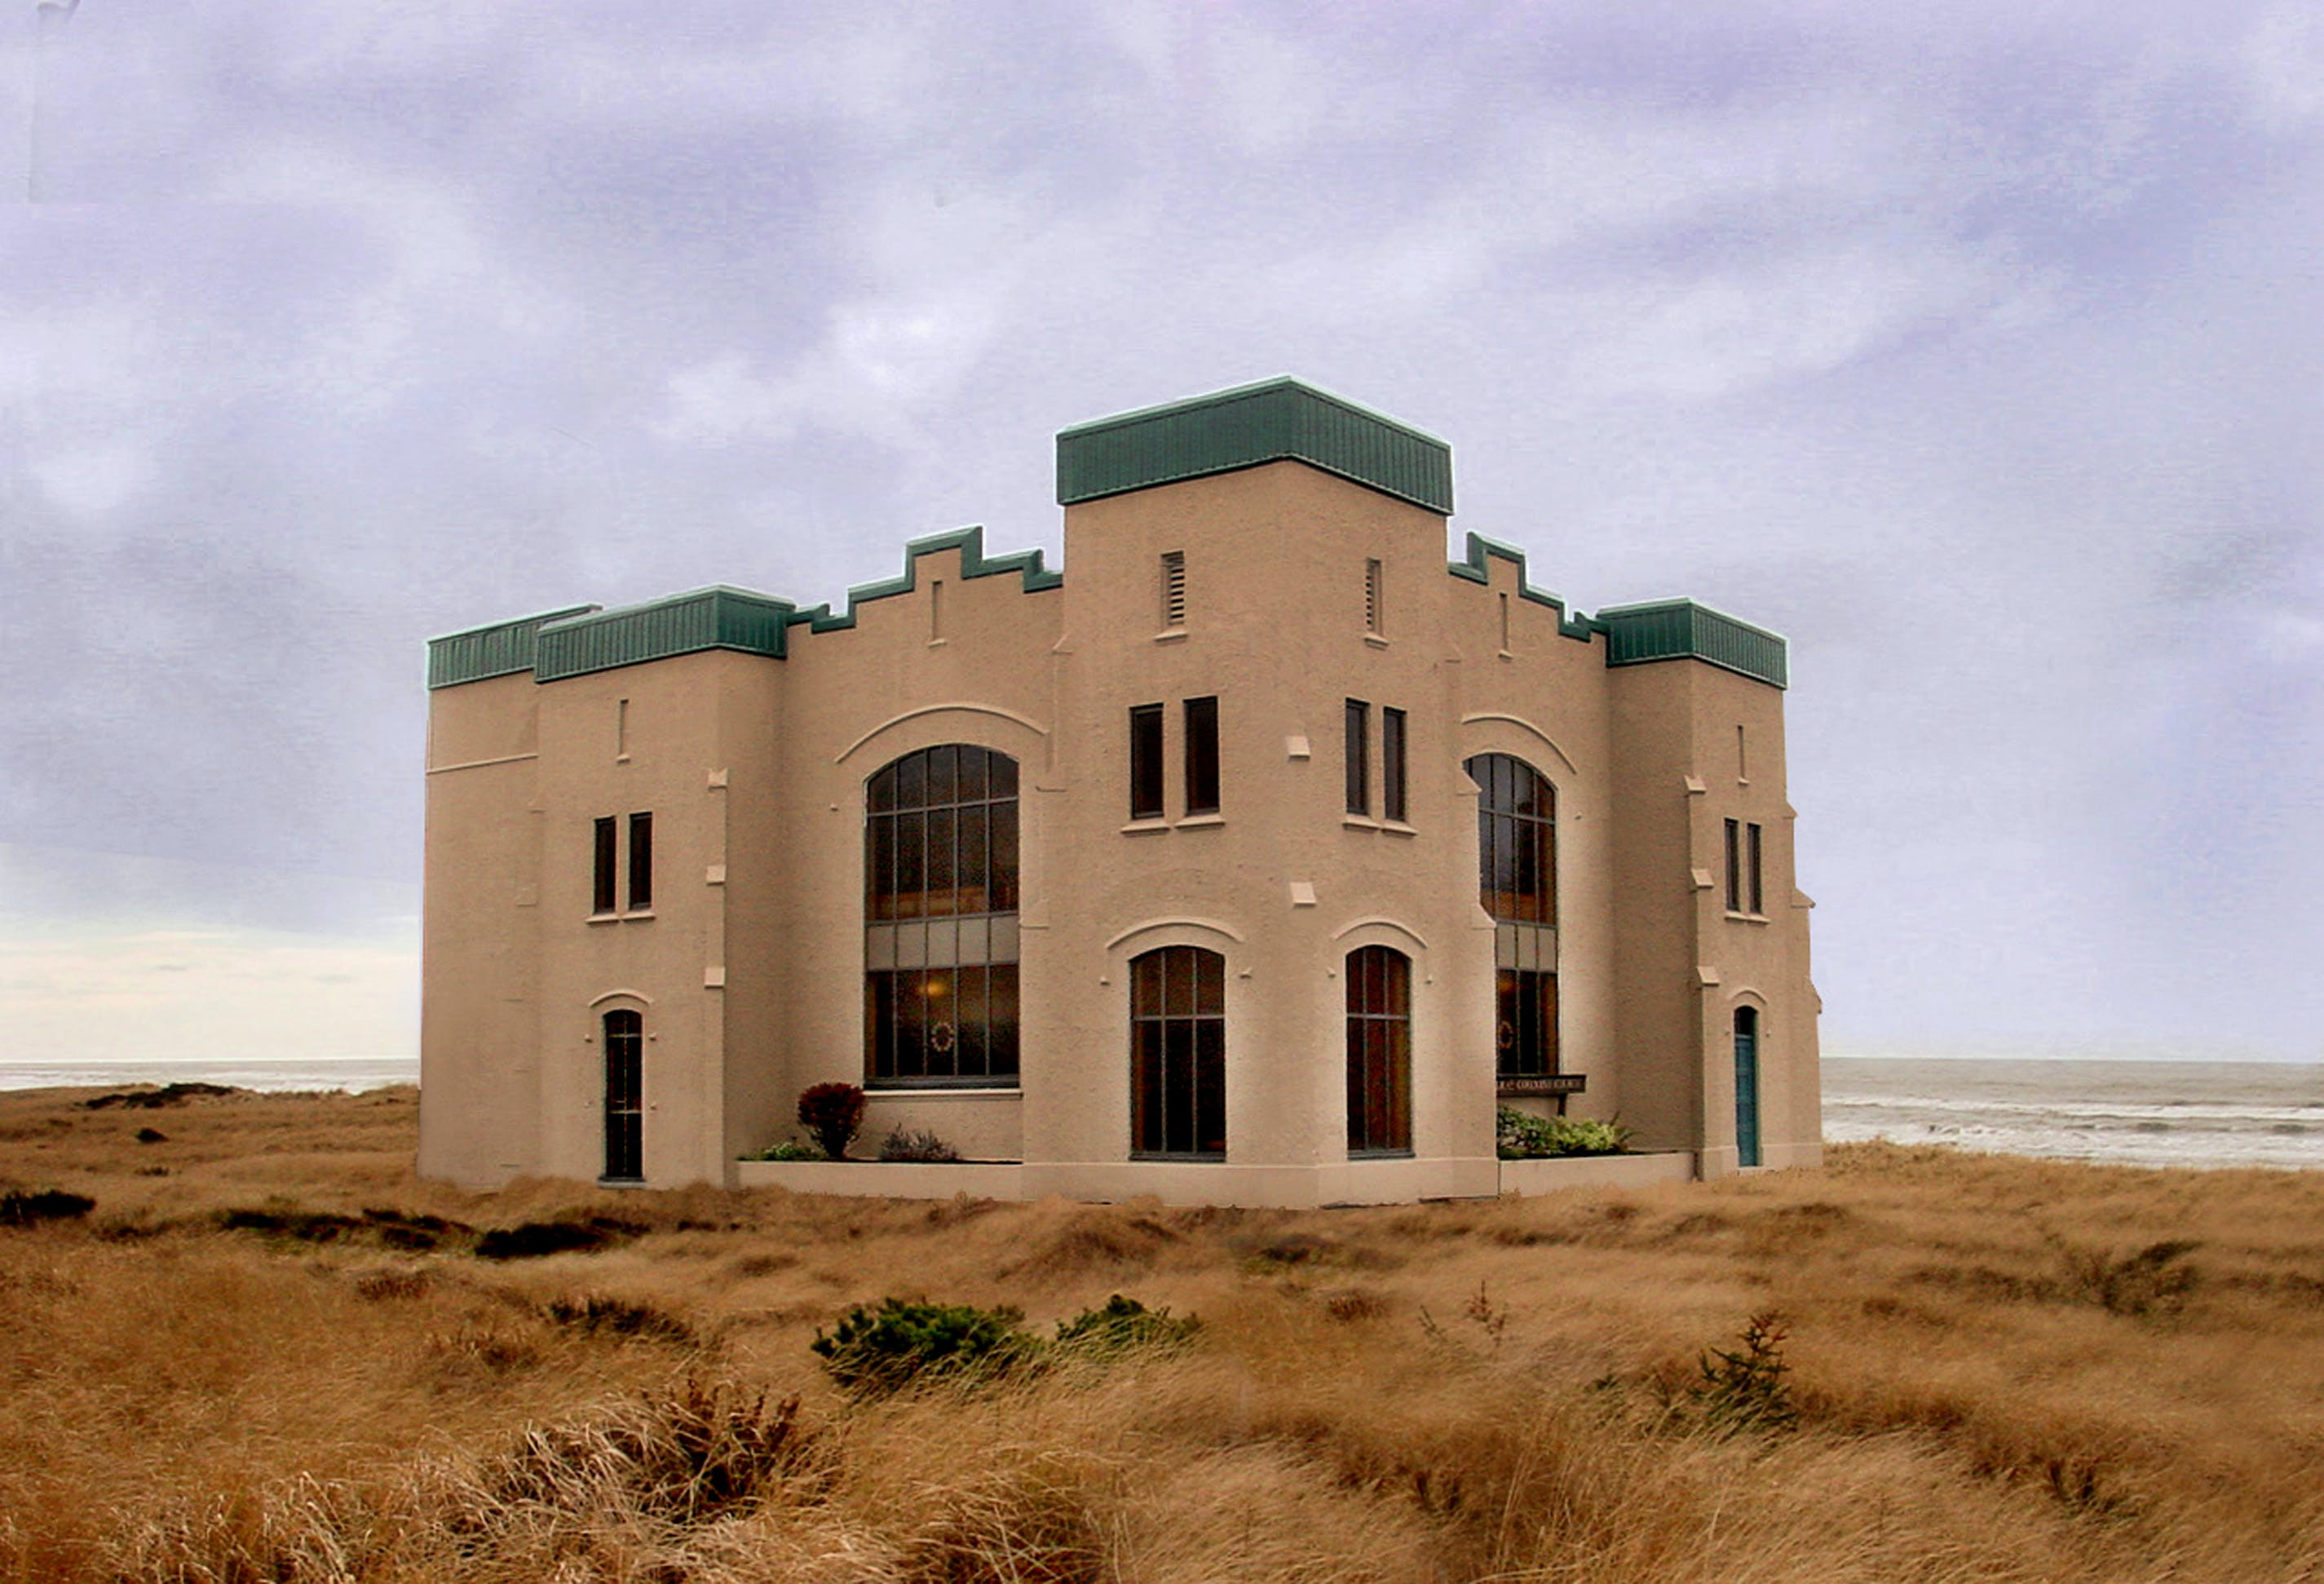 Brown Concrete Mansion at the Middle of Nowhere